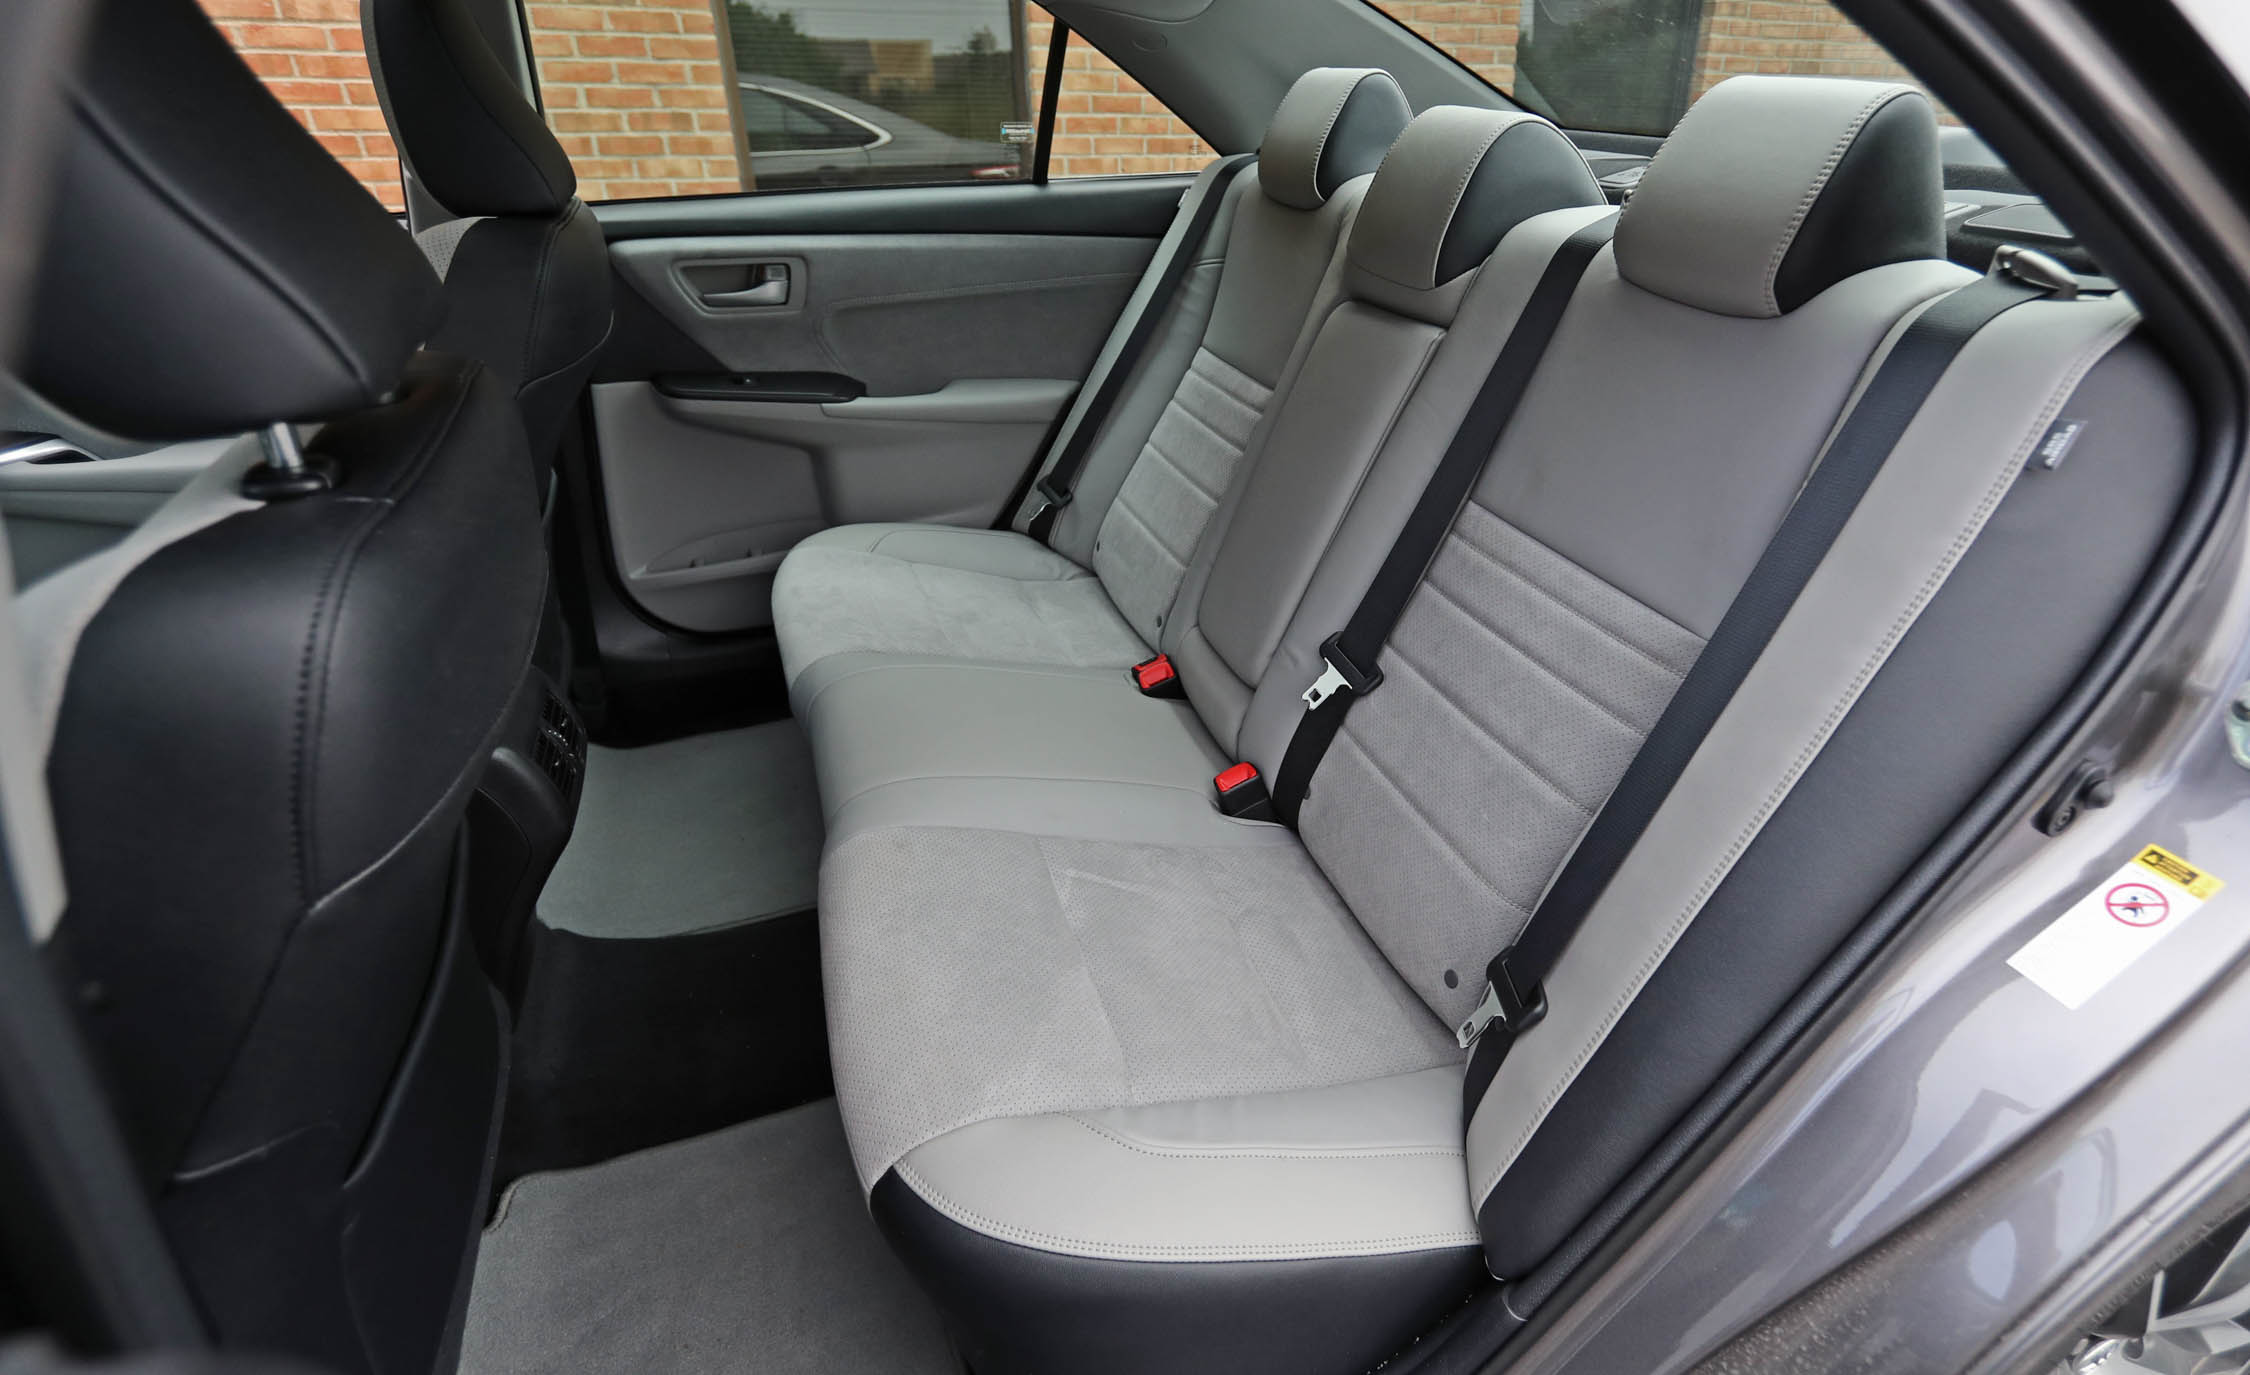 2017 Toyota Camry Interior Seats Rear (View 21 of 37)